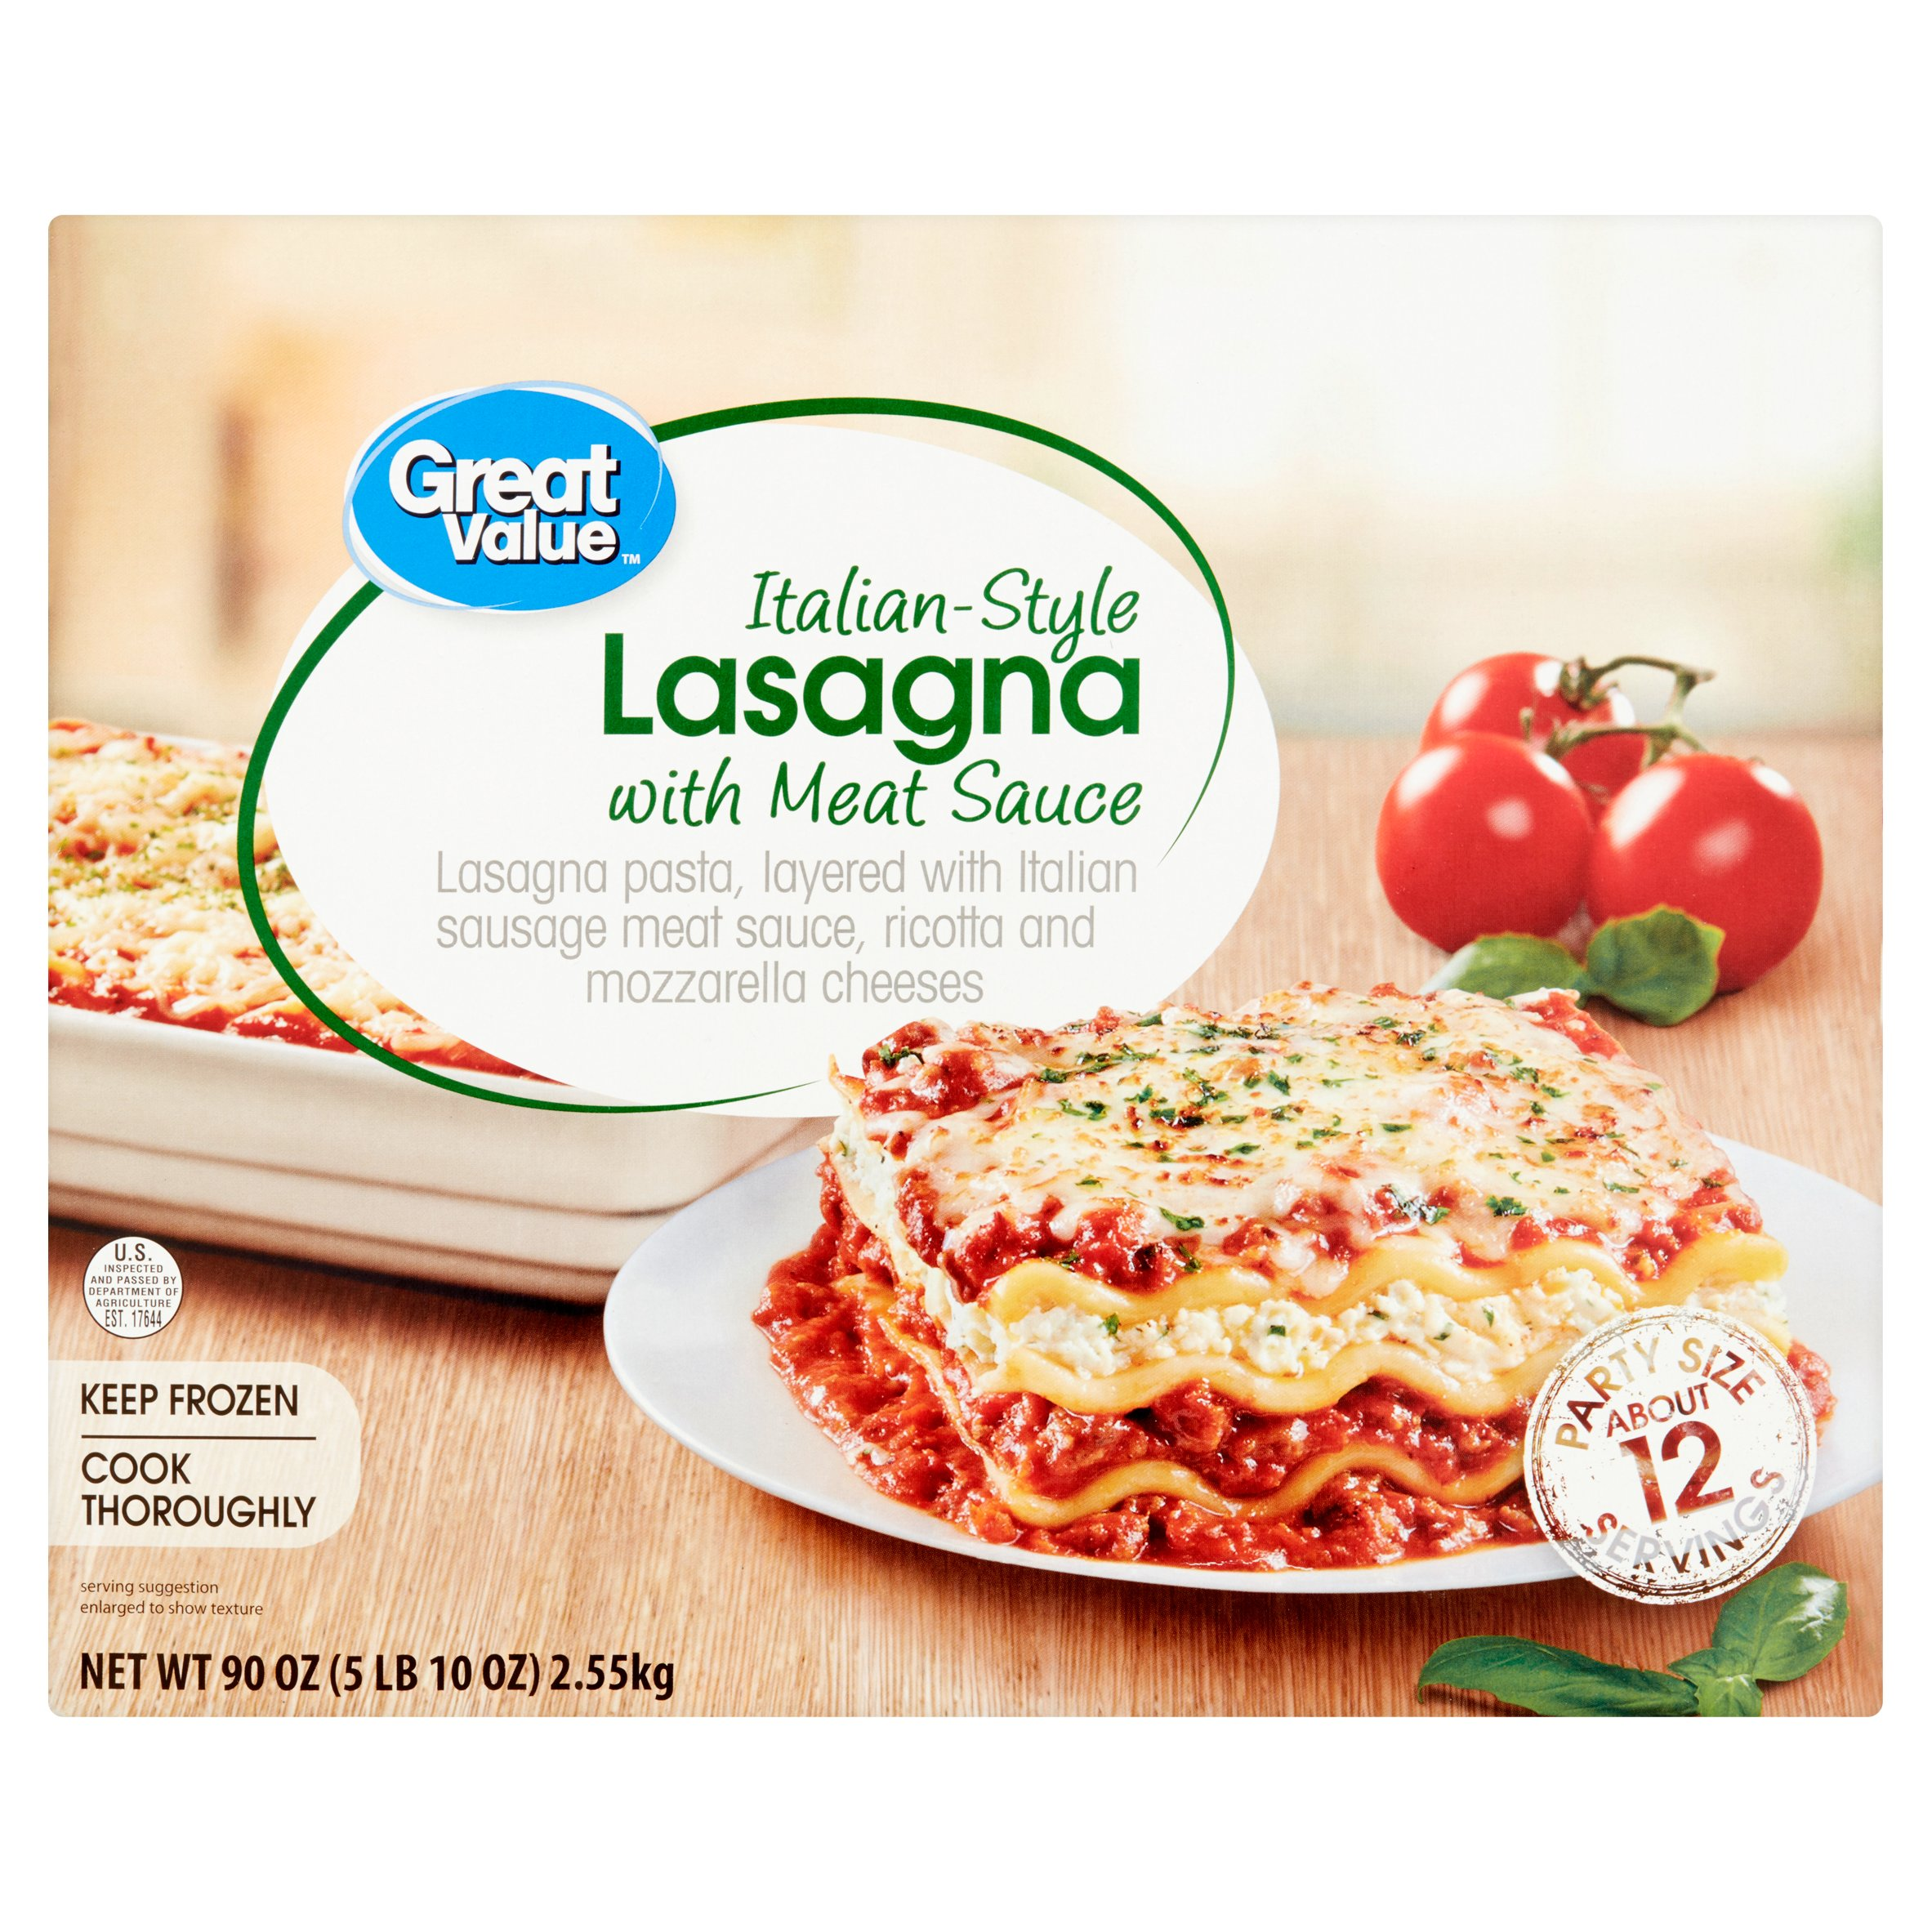 Great Value Italian-Style Lasagna with Meat Sauce Party Size, 90 oz